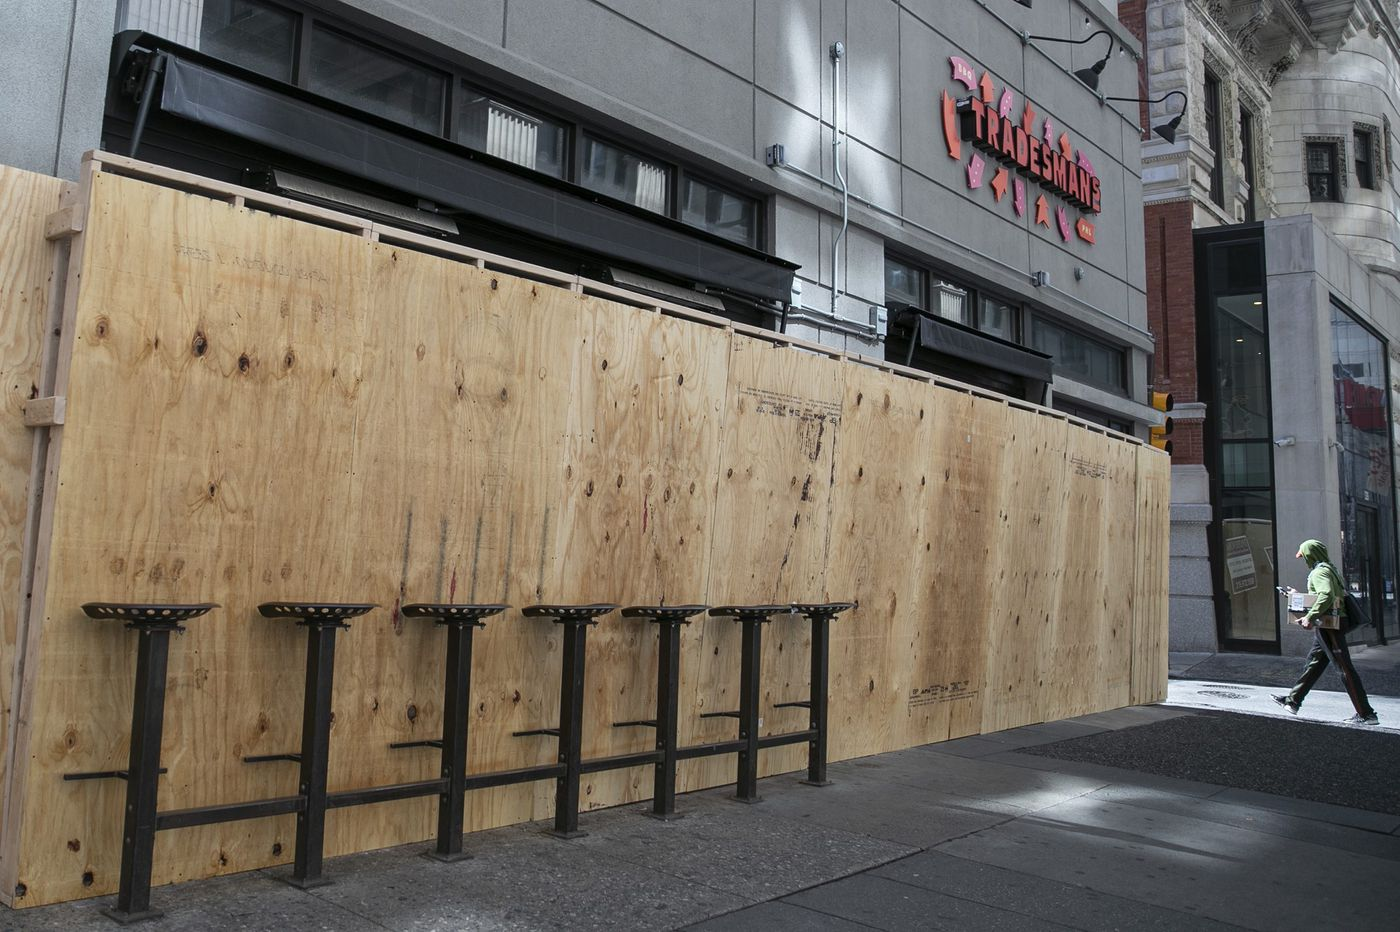 'It looks like hell.' Coronavirus has Philly businesses boarding up as if bracing for a hurricane